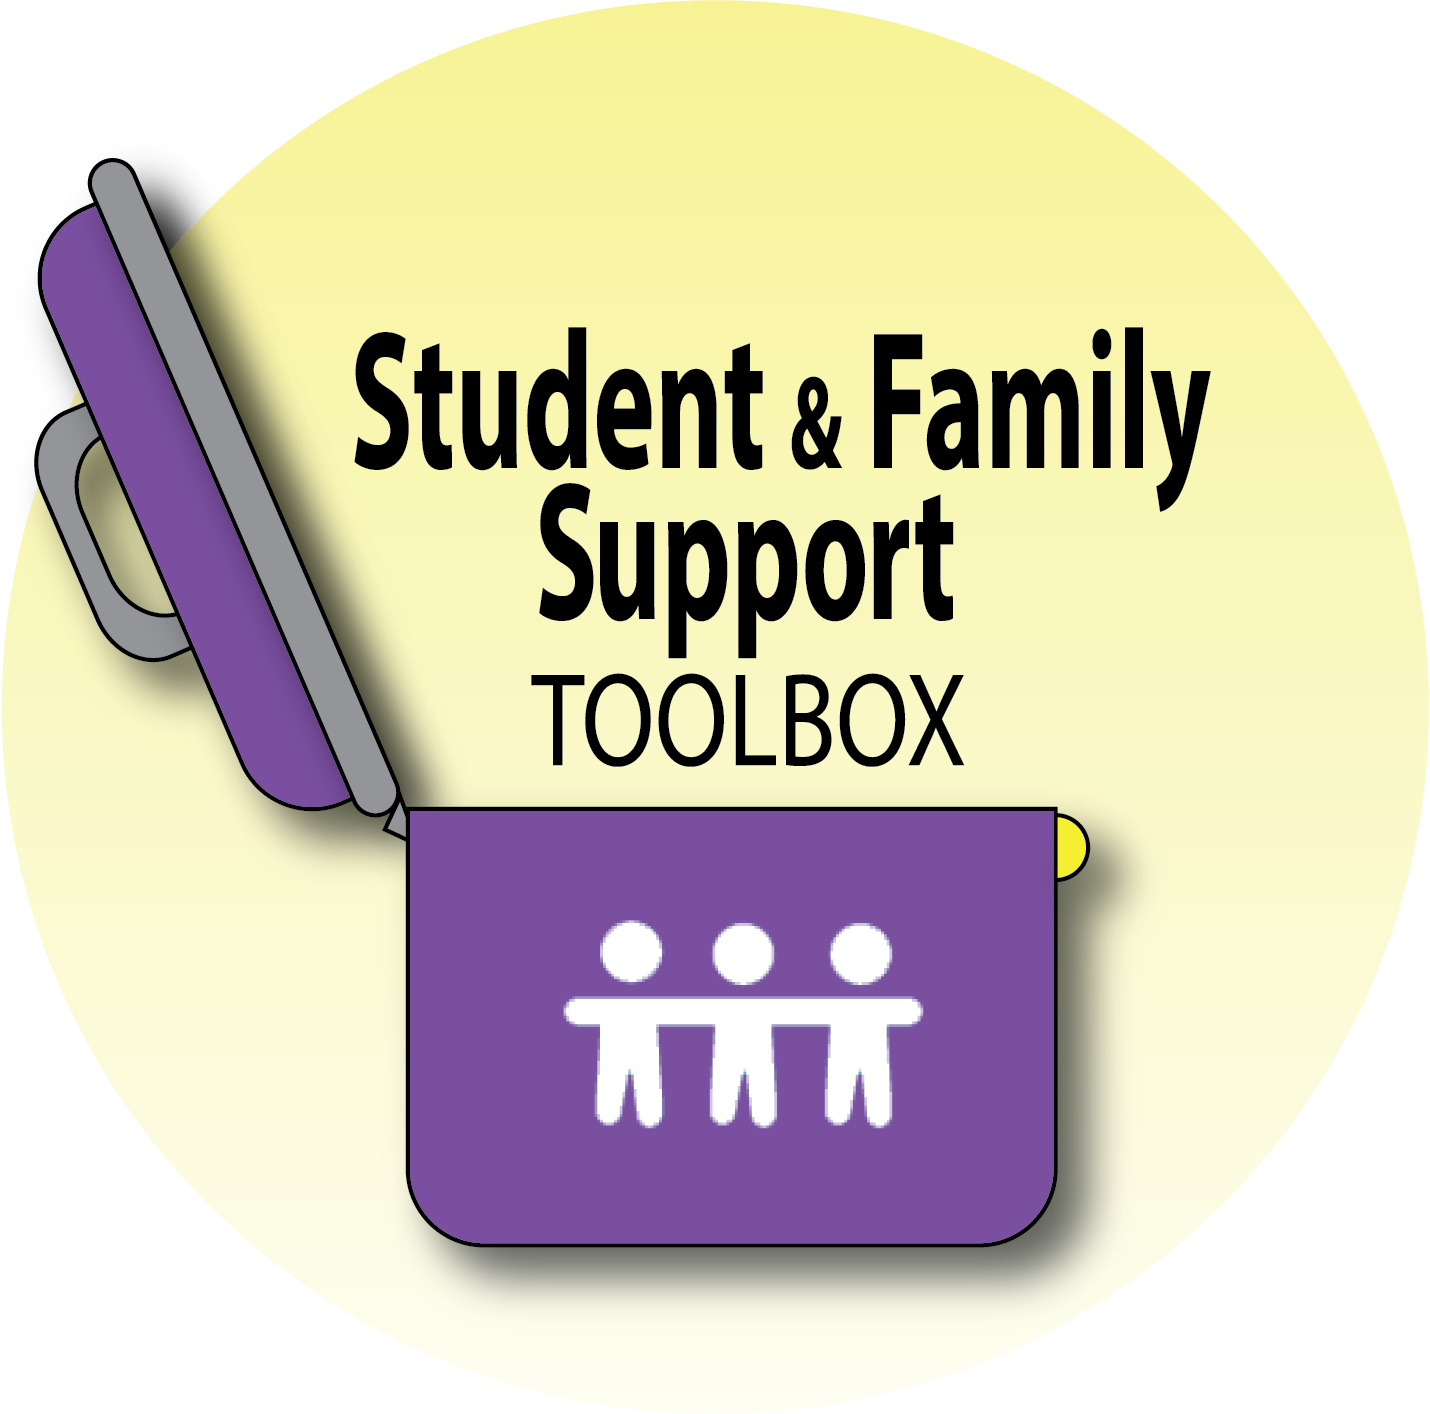 Student and Family Support Toolbox